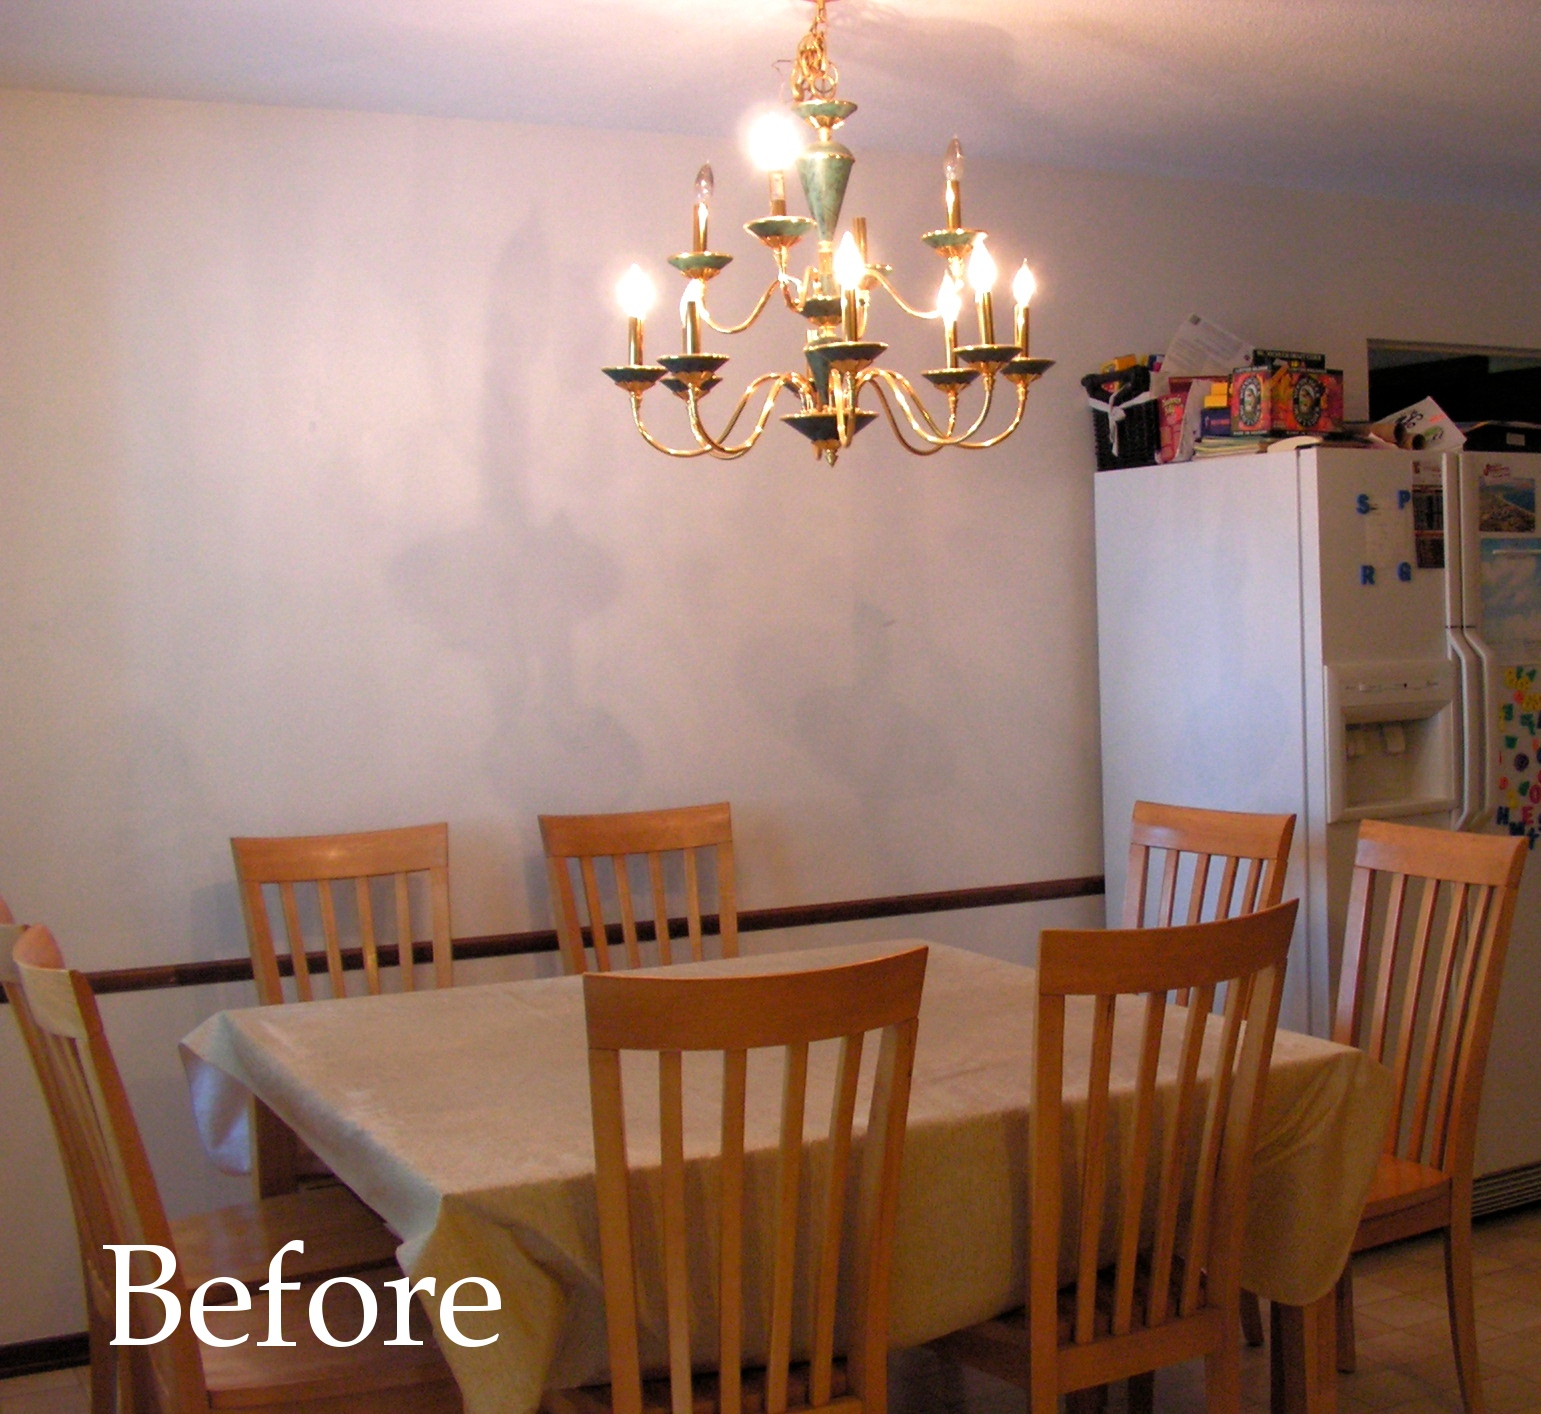 Painting Dining Room Chandelier: Nest Full Of Eggs: DIY Painted Chandelier